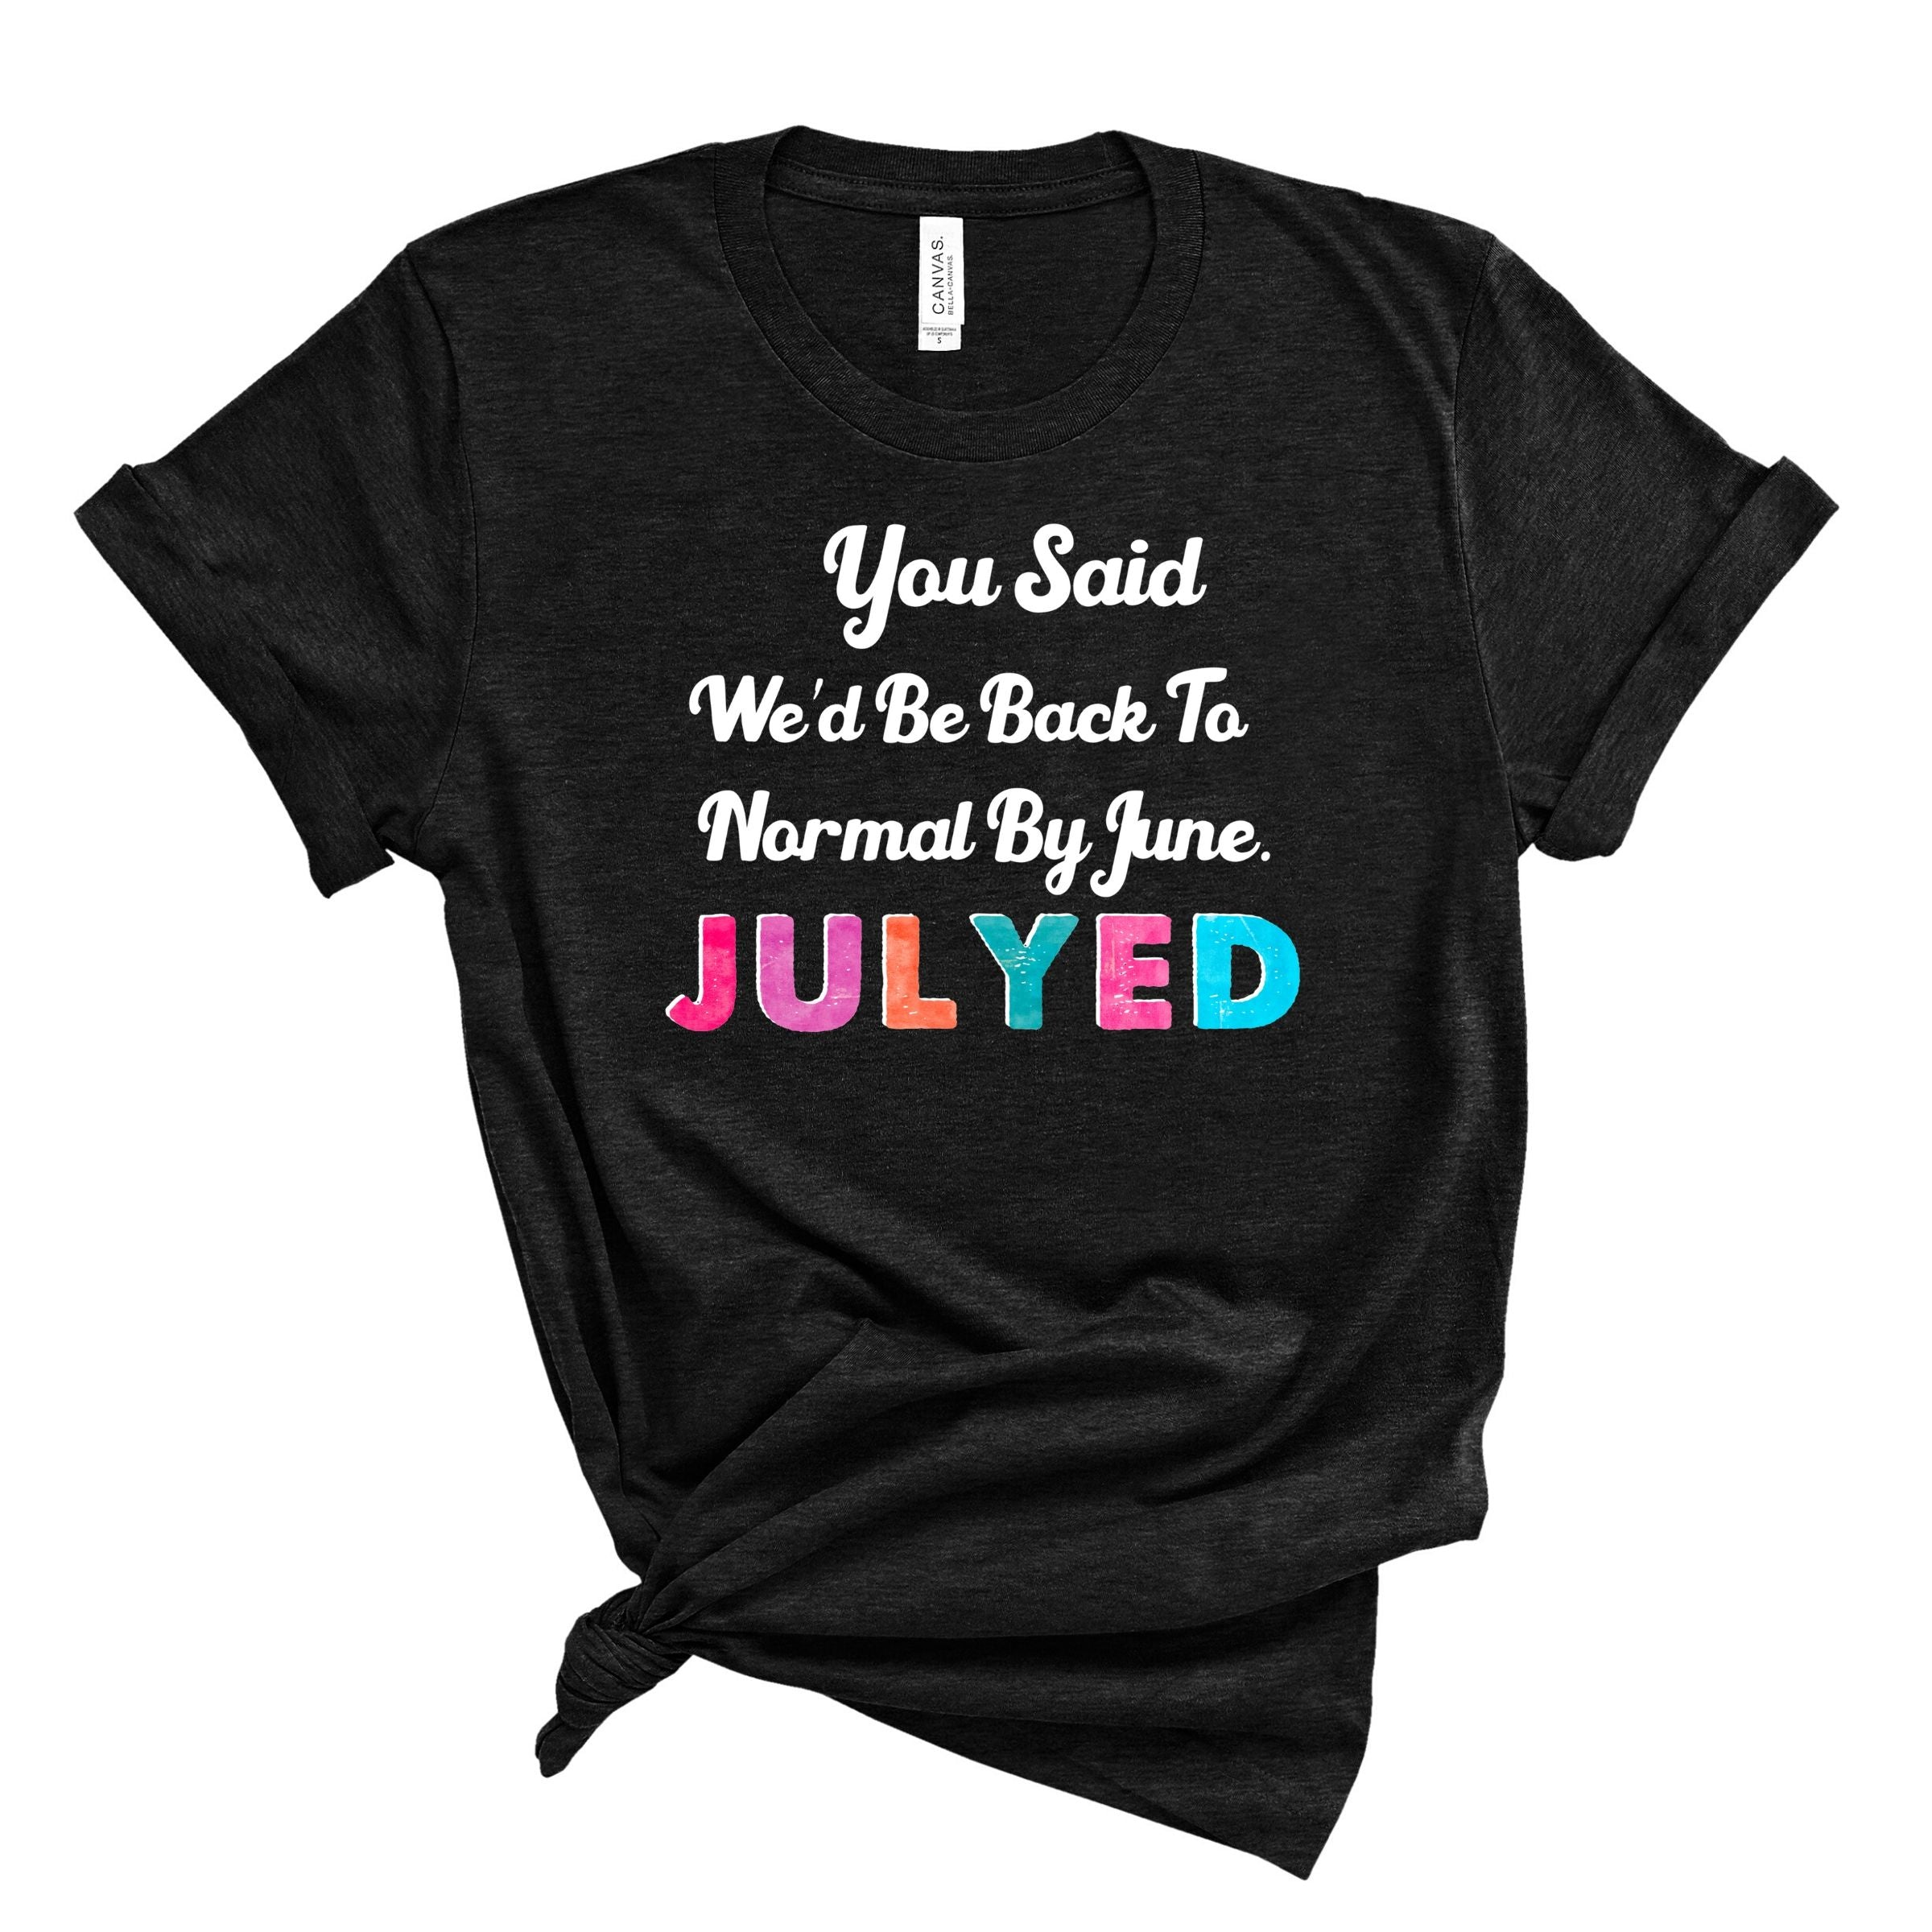 S - You Said We'd Be Back To Normal Julyed Black-Shop-Wholesale-Womens-Boutique-Custom-Graphic-Tees-Branding-Gifts